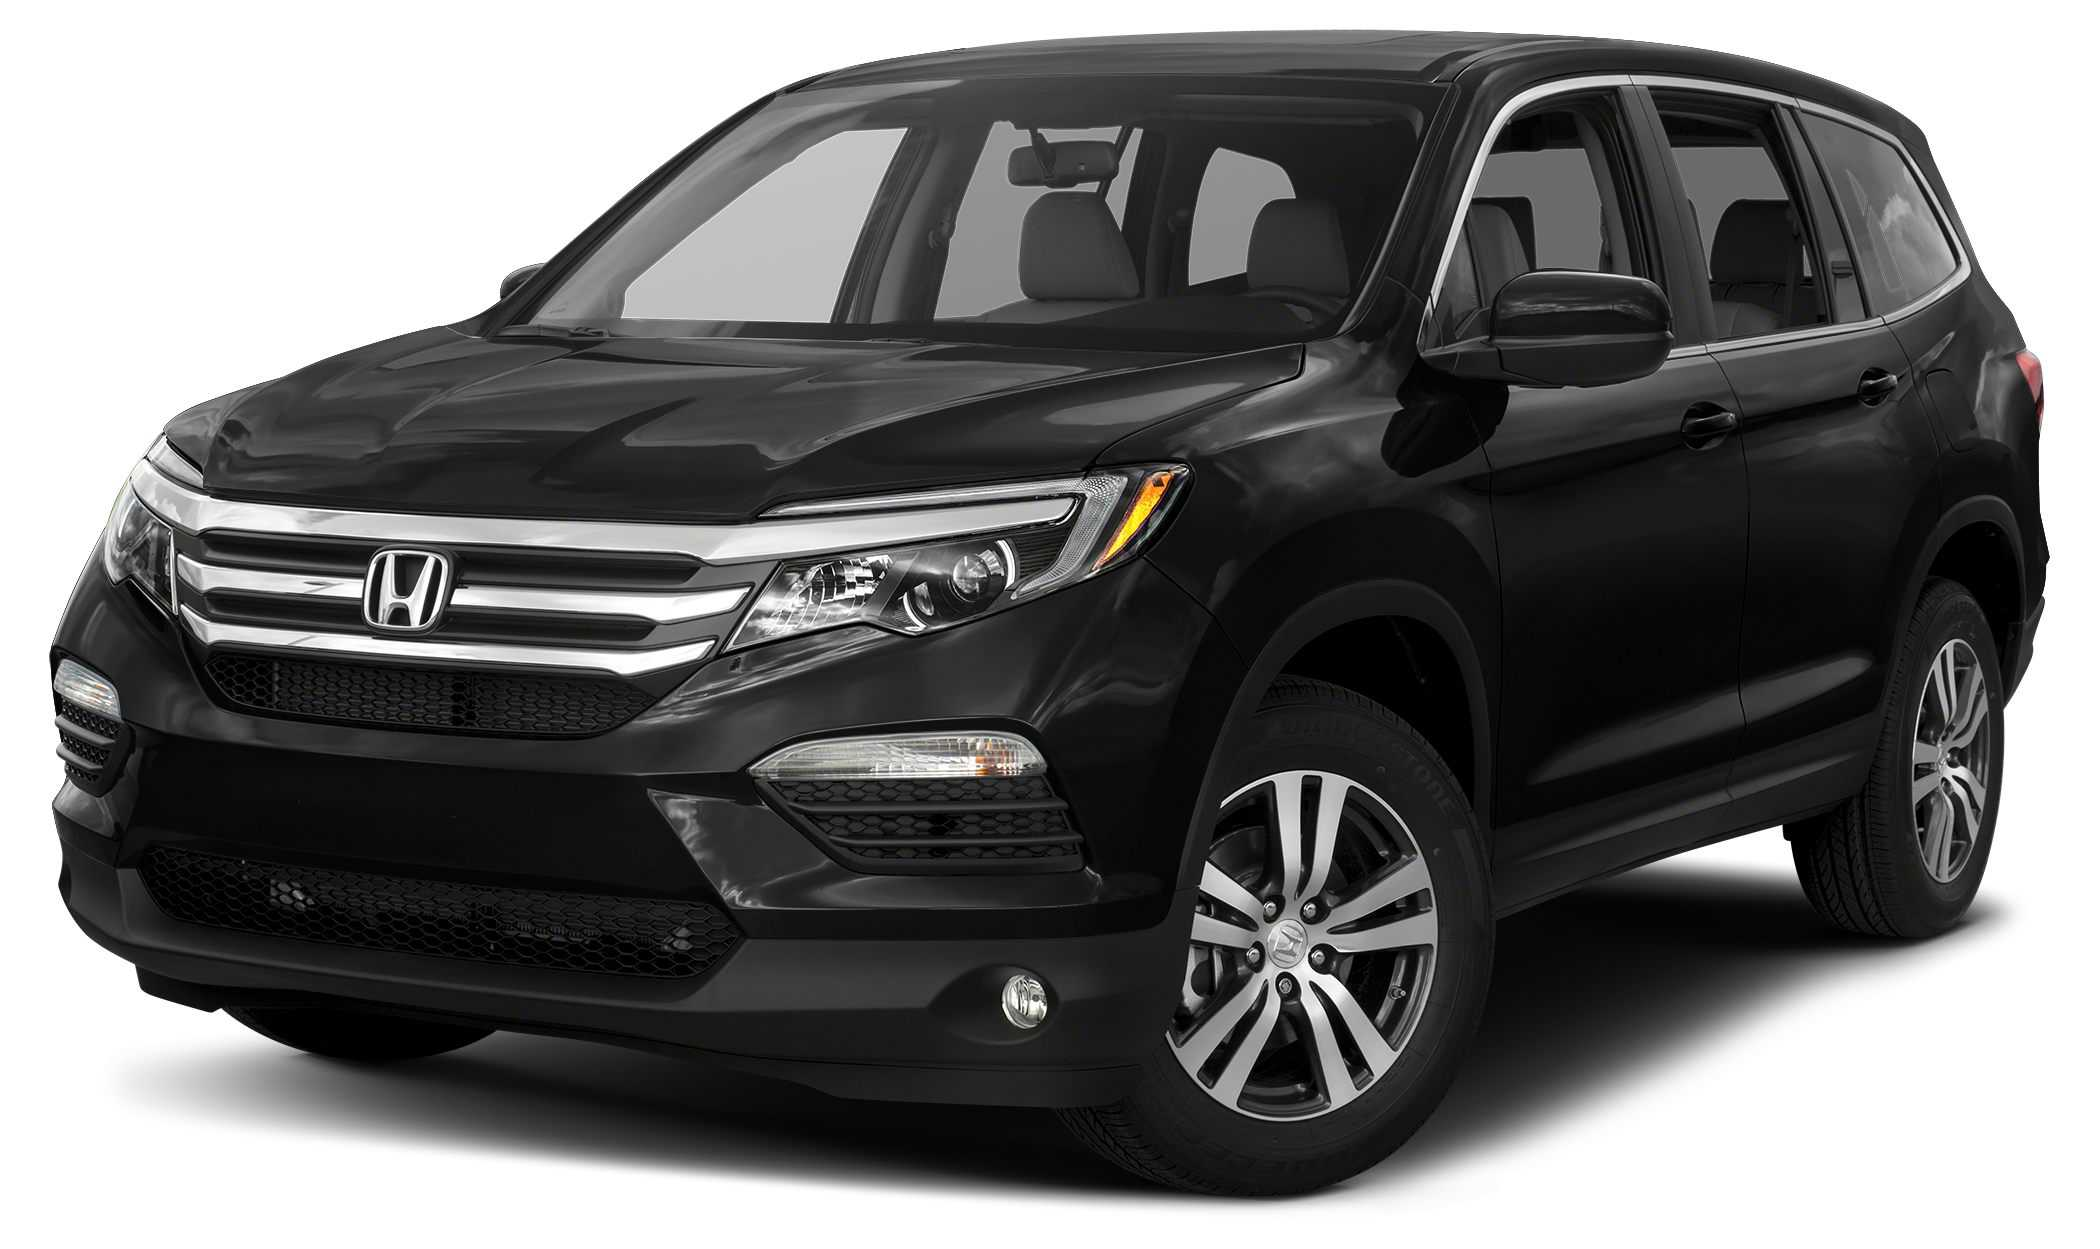 Average Car Insurance For Honda Pilot